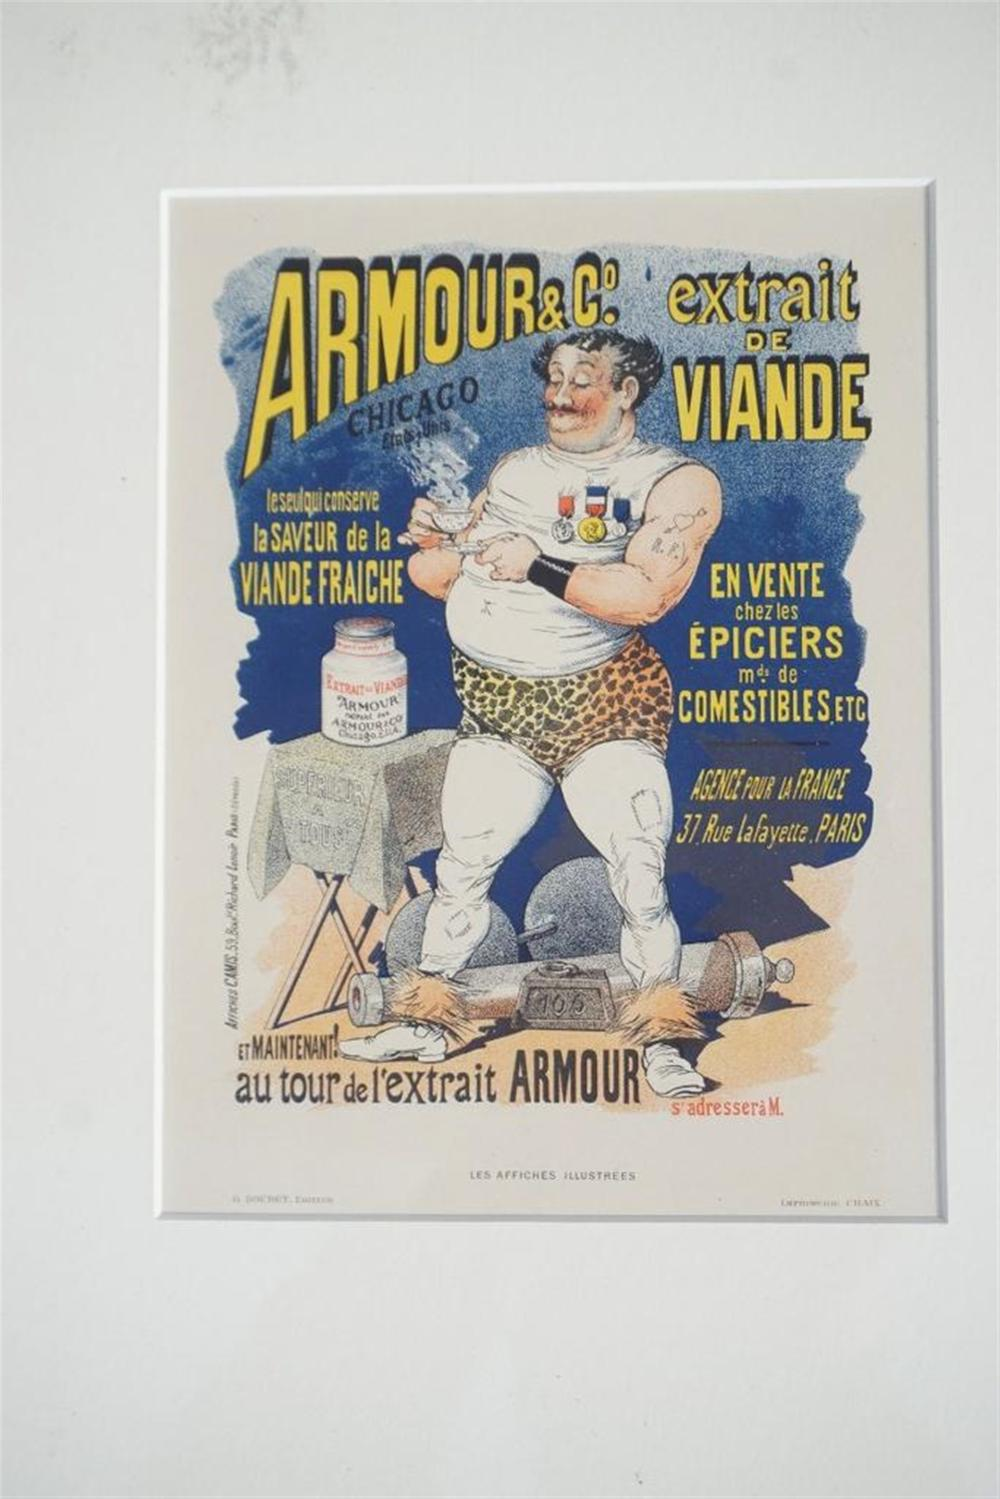 "1896 ARMOUR & CO. PARIS STONE LITHO POSTER, MEASURES 8 3/4"" X 12 1/4"", EXCELLENT CONDITION, SHRINK WRAPPED AND MATTED, FROM OLD TIME RETIRED DEALERS COLLECTION.  AFFICHES CAMIS?"